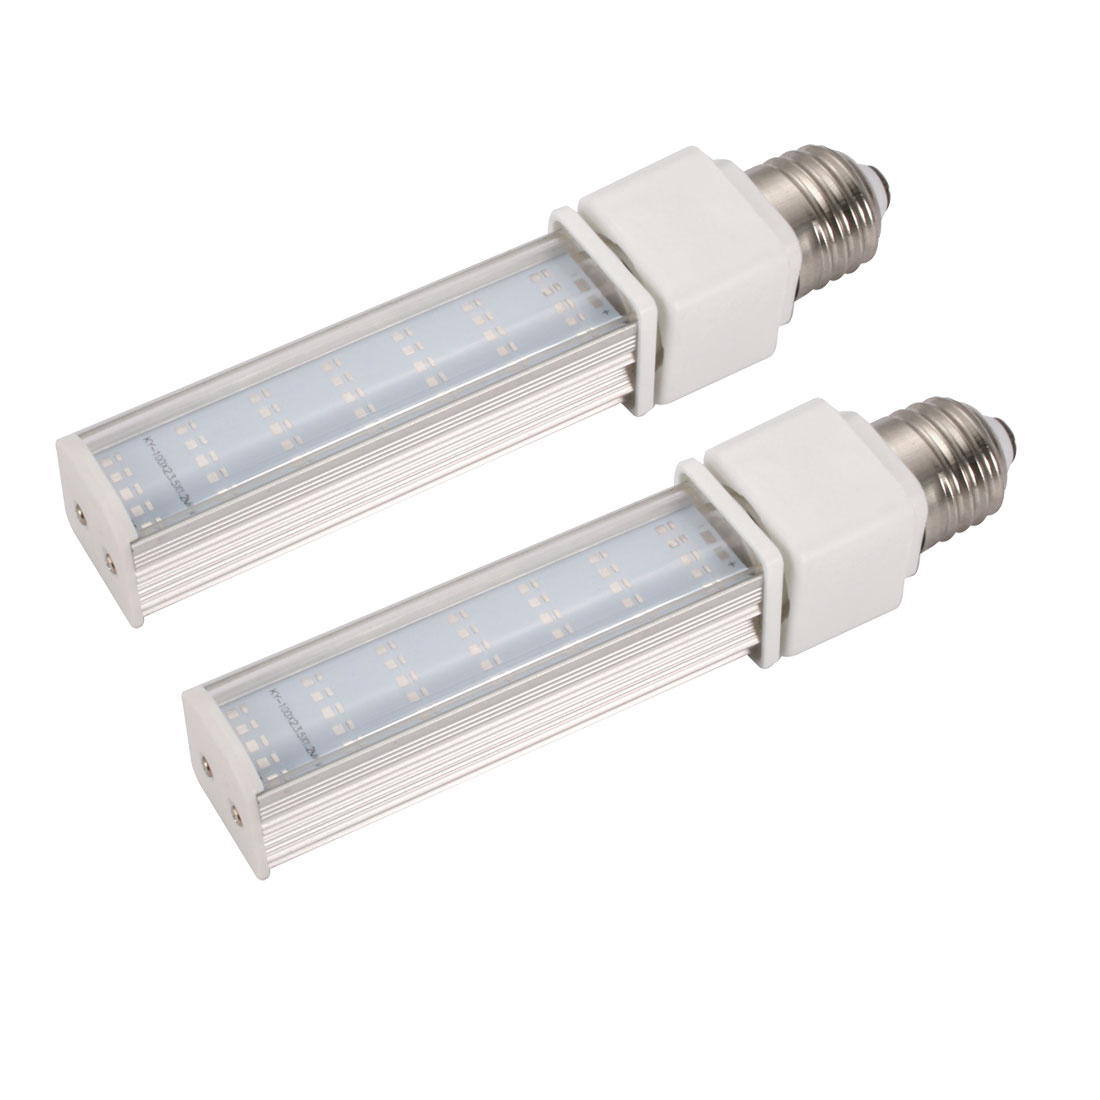 2pack DIY parts for PLC Lamp E27 7W PL-C Lamp Housing Kit w Clear Cover